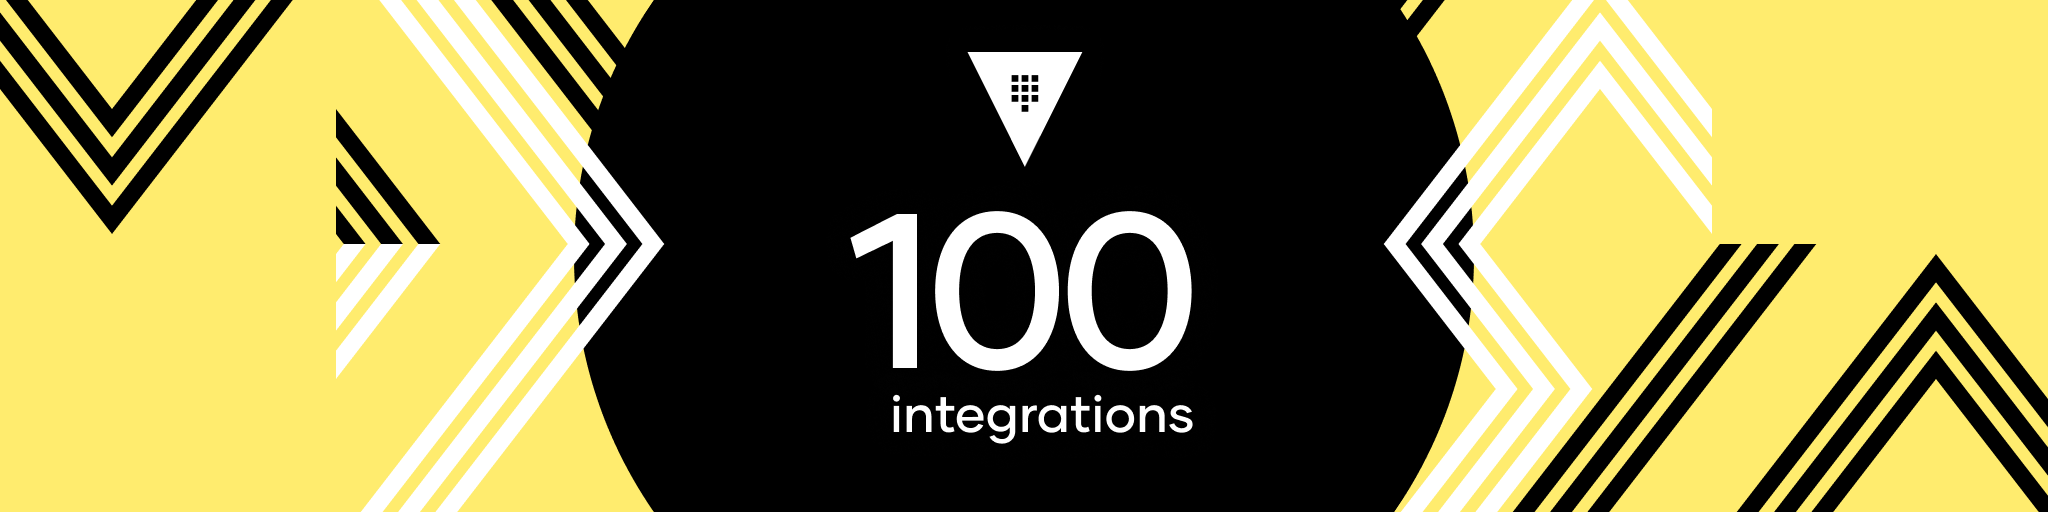 HashiCorp Vault Surpasses 100 Integrations with 75 Partners